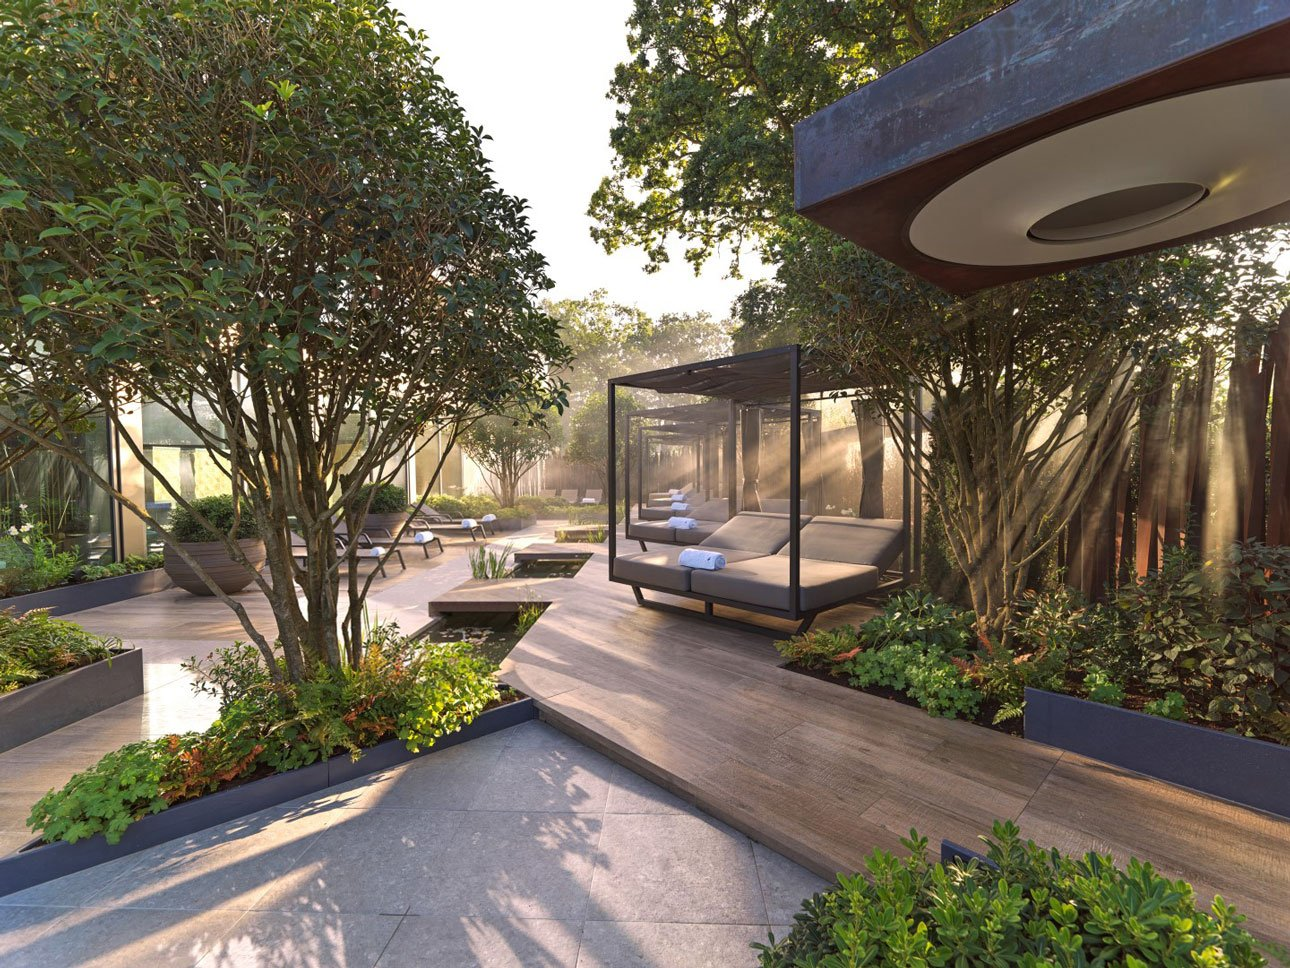 Bespoke day beds beside water rill with porcelain paving and mature Osmanthus aquifolium, pittosporum in shade planting